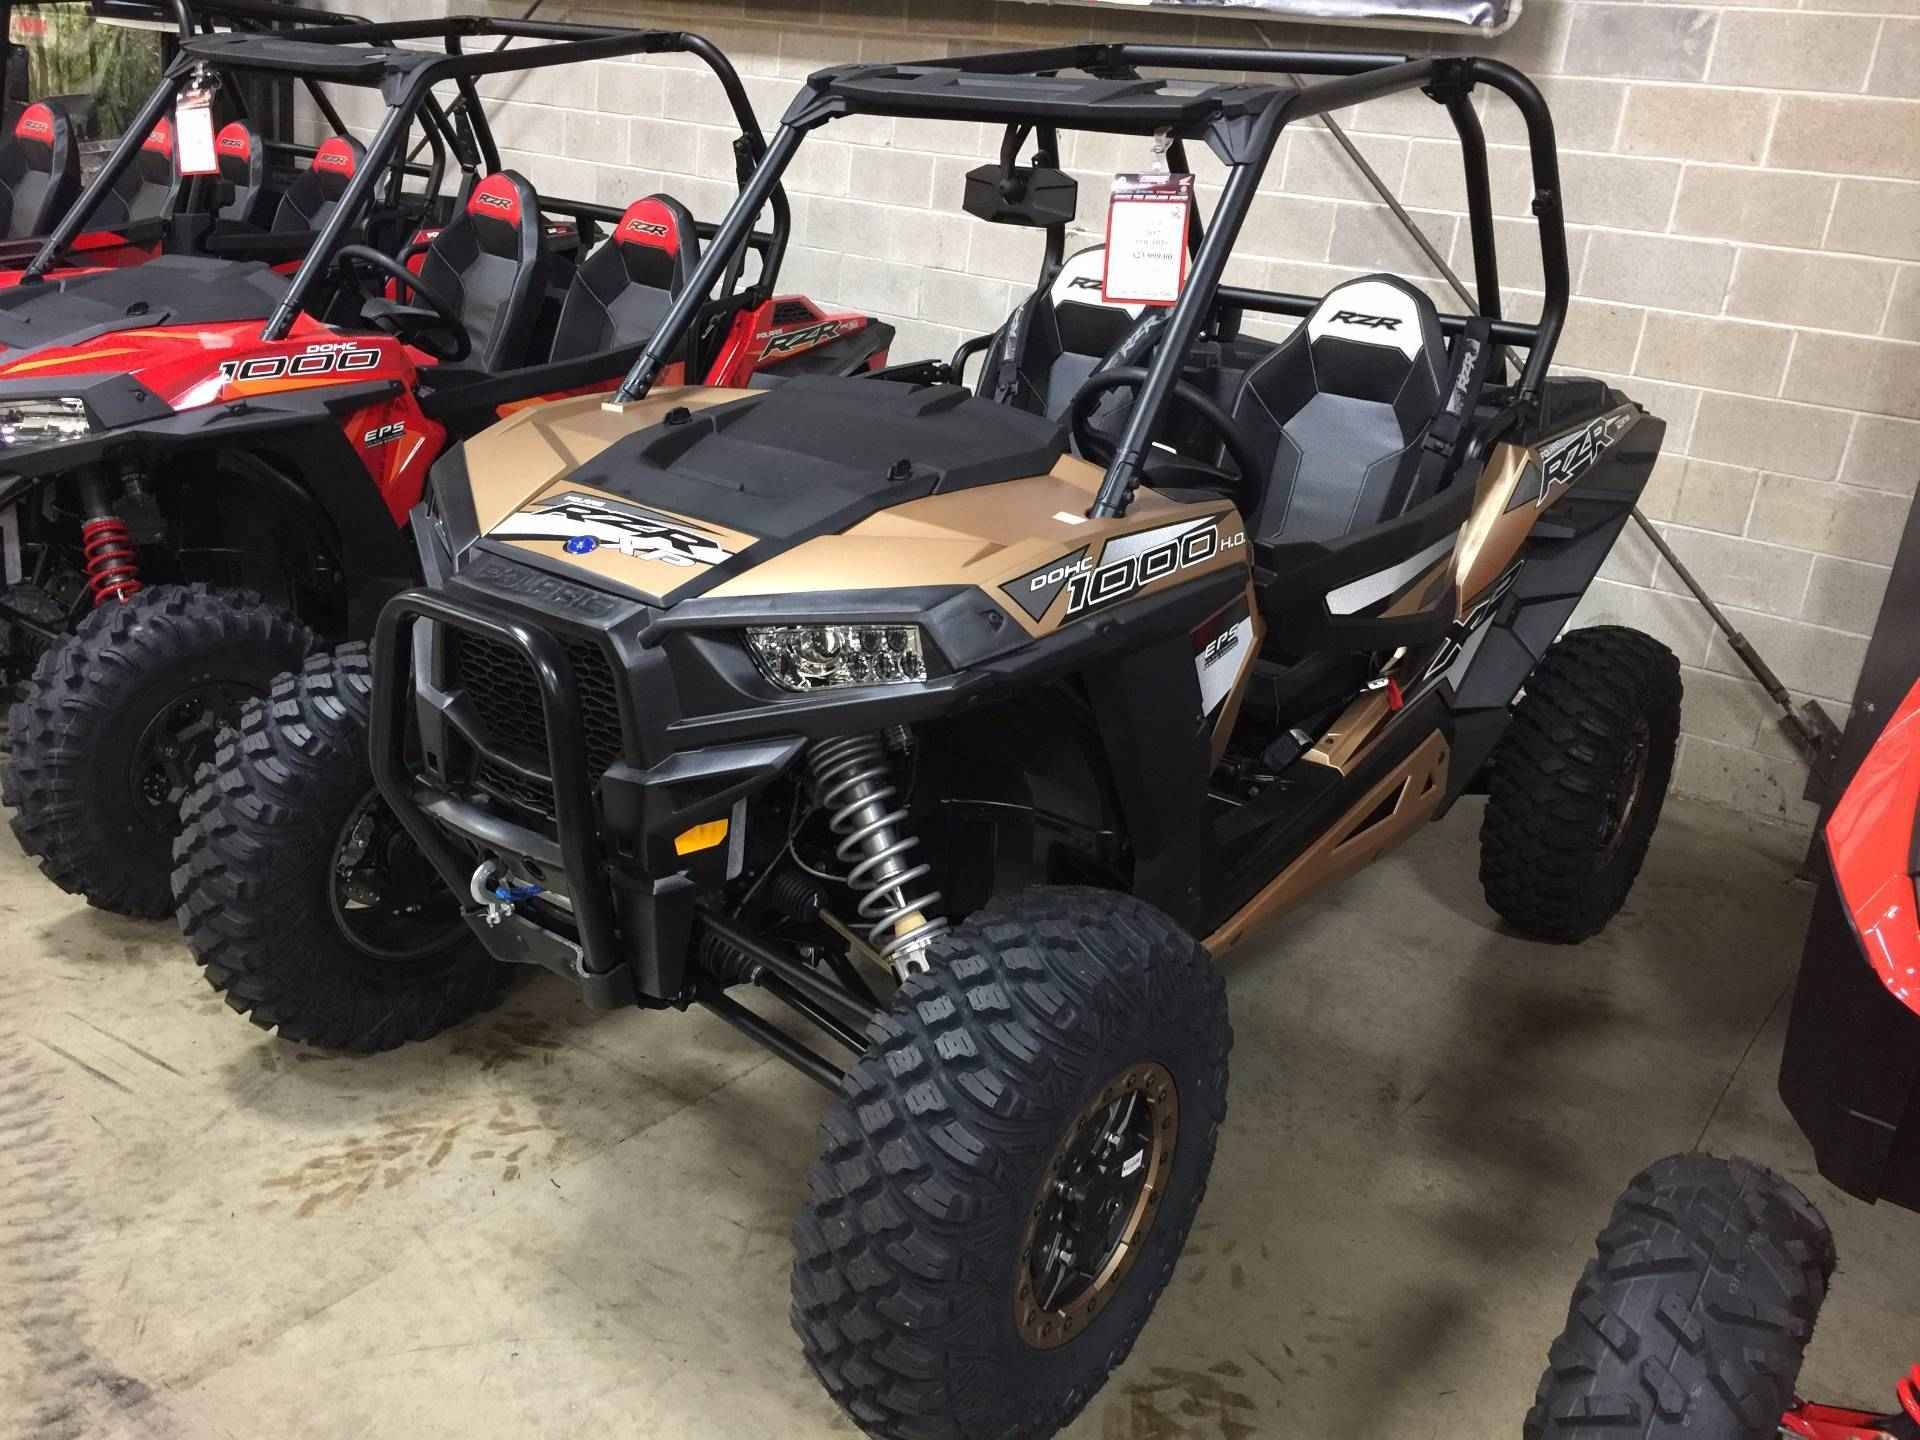 New 2017 Polaris RZR XP' 1000 EPS LE ATVs For Sale in Illinois